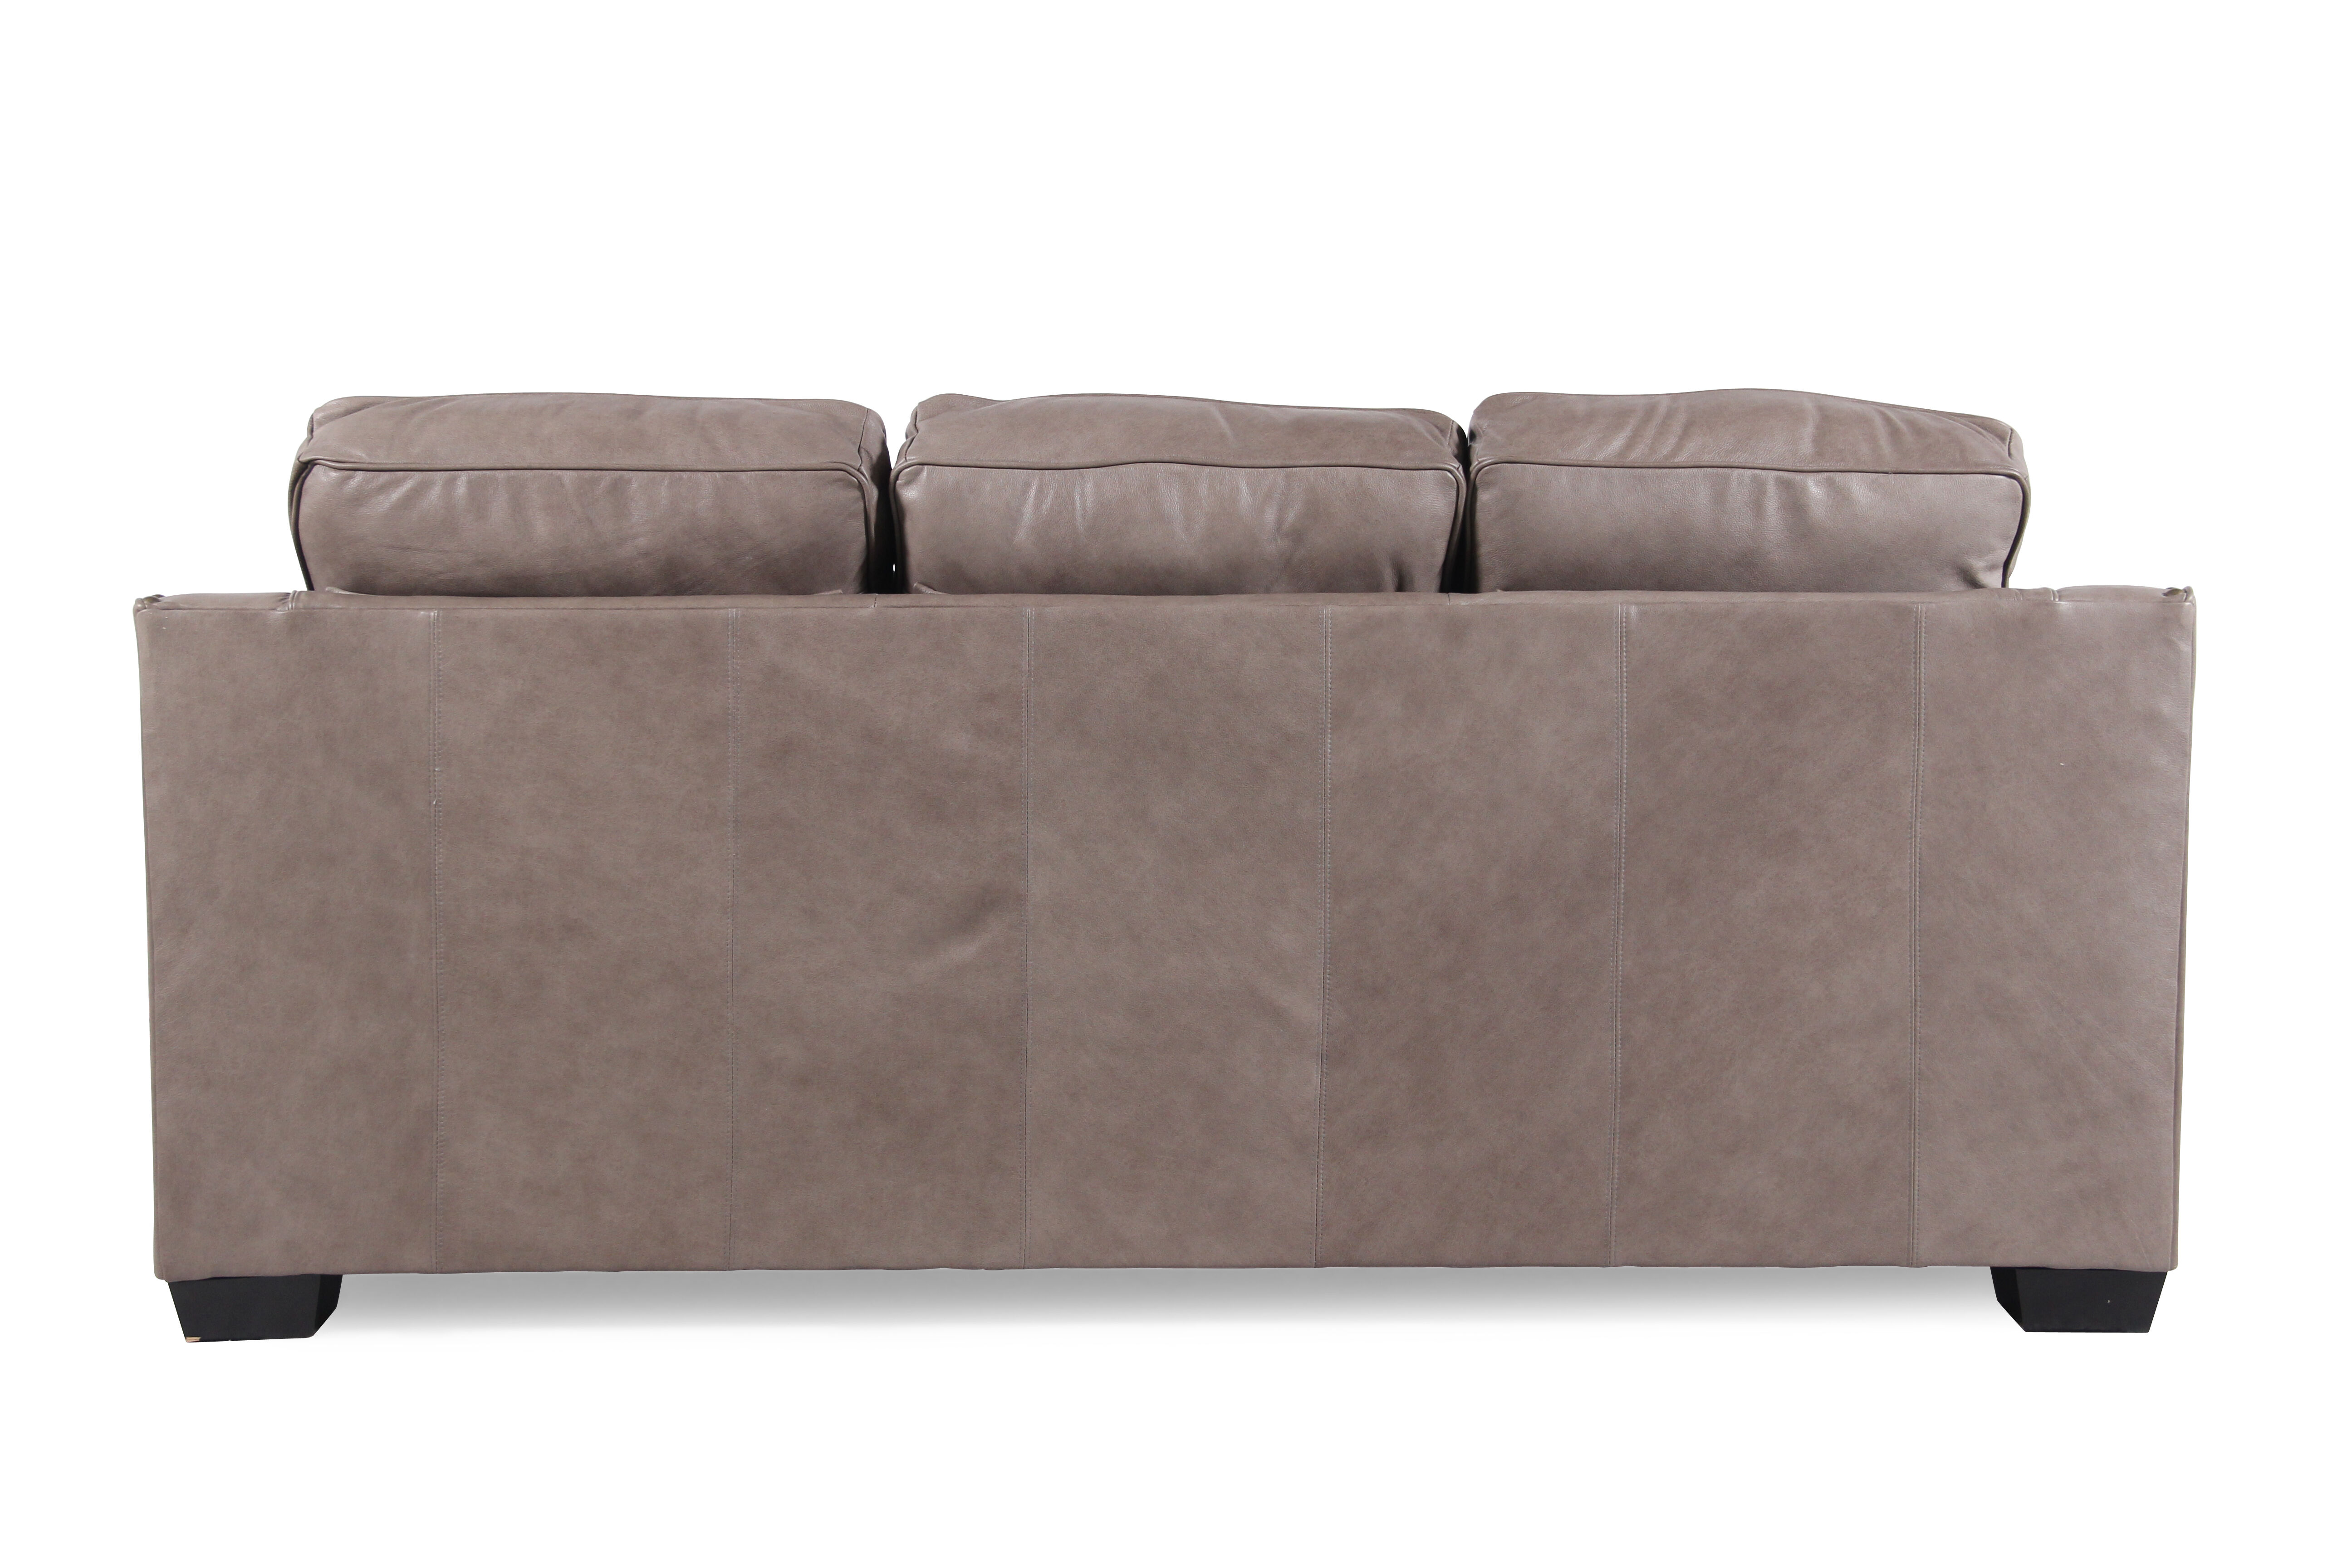 low profile leather sectional sofa glass and chrome table nailhead accented 84 quot in chestnut